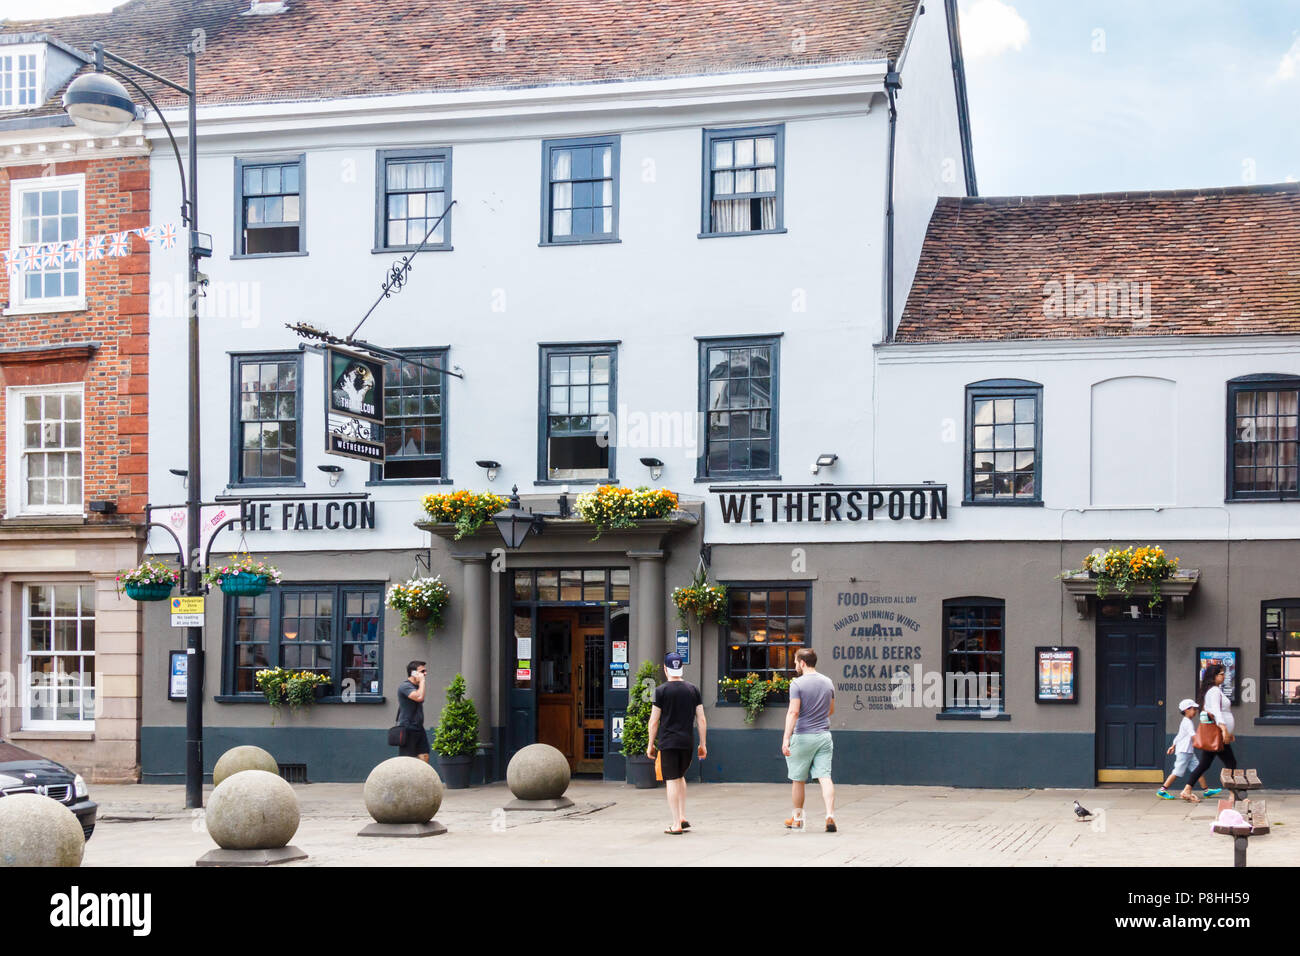 High Wycombe, UK - 3rd June 2018: People approaching the Falcon pub. The pub belongs to the Wetherspoon chain. - Stock Image